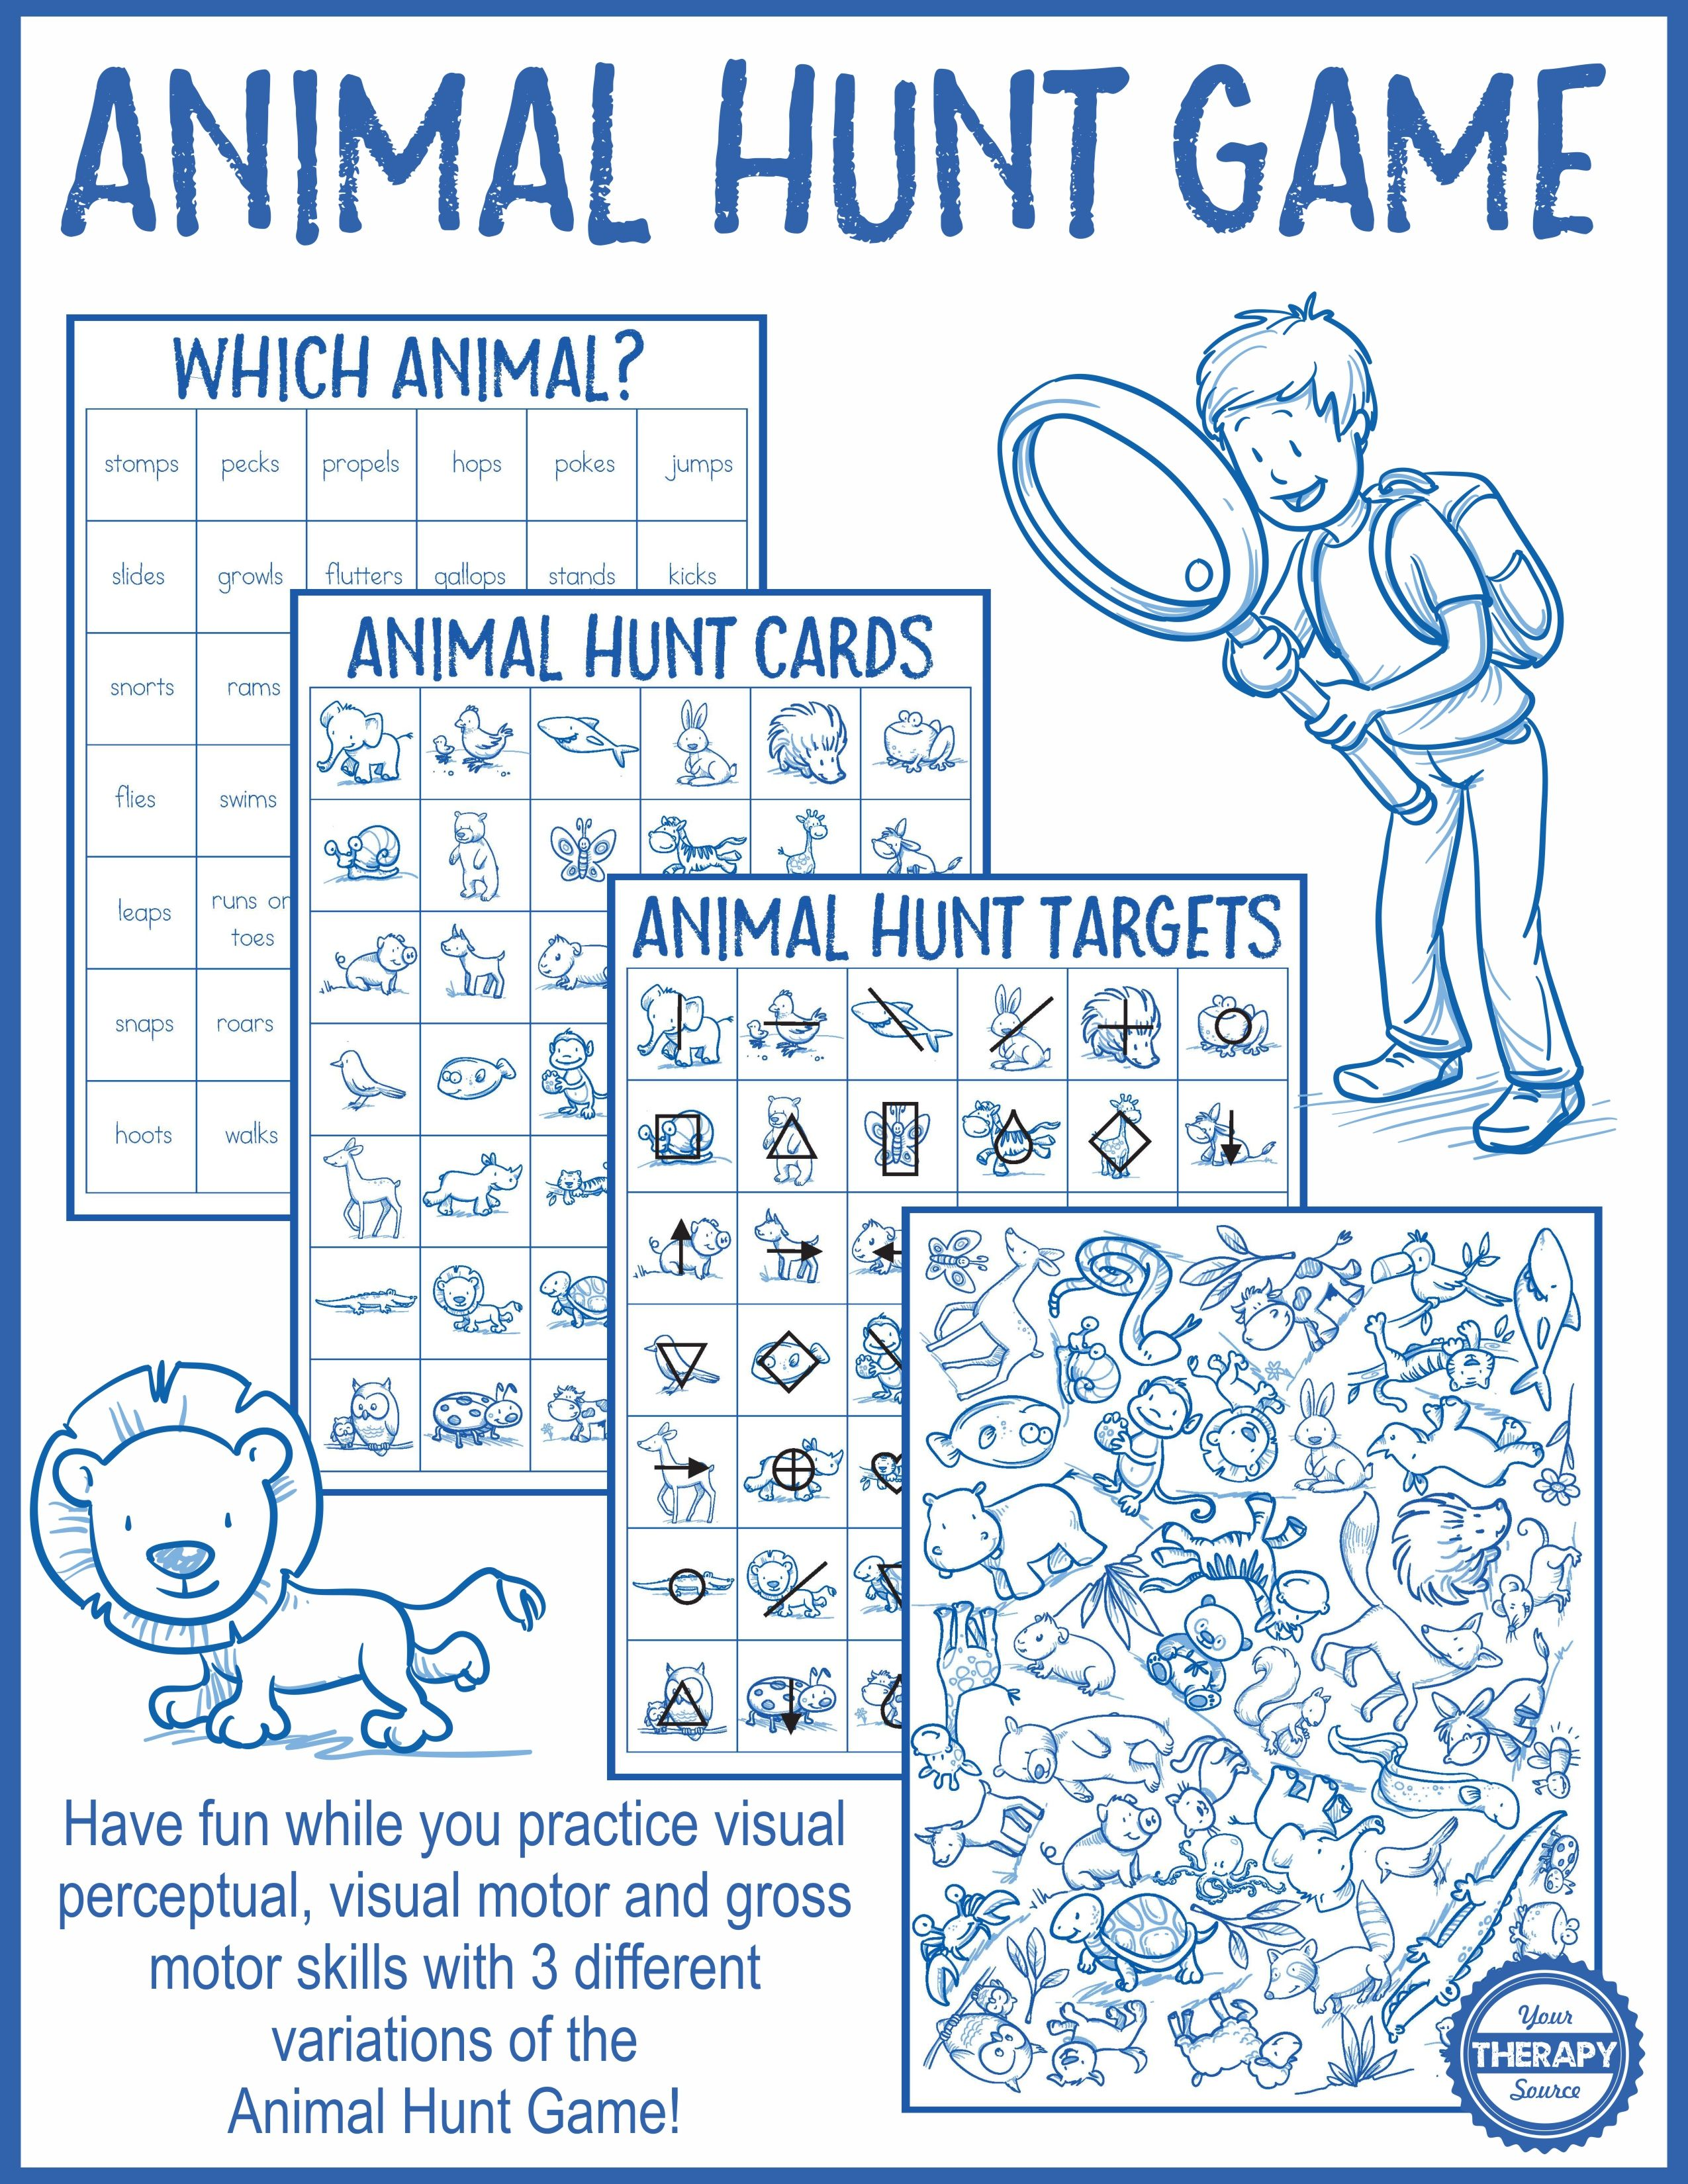 Animal Hunt Game